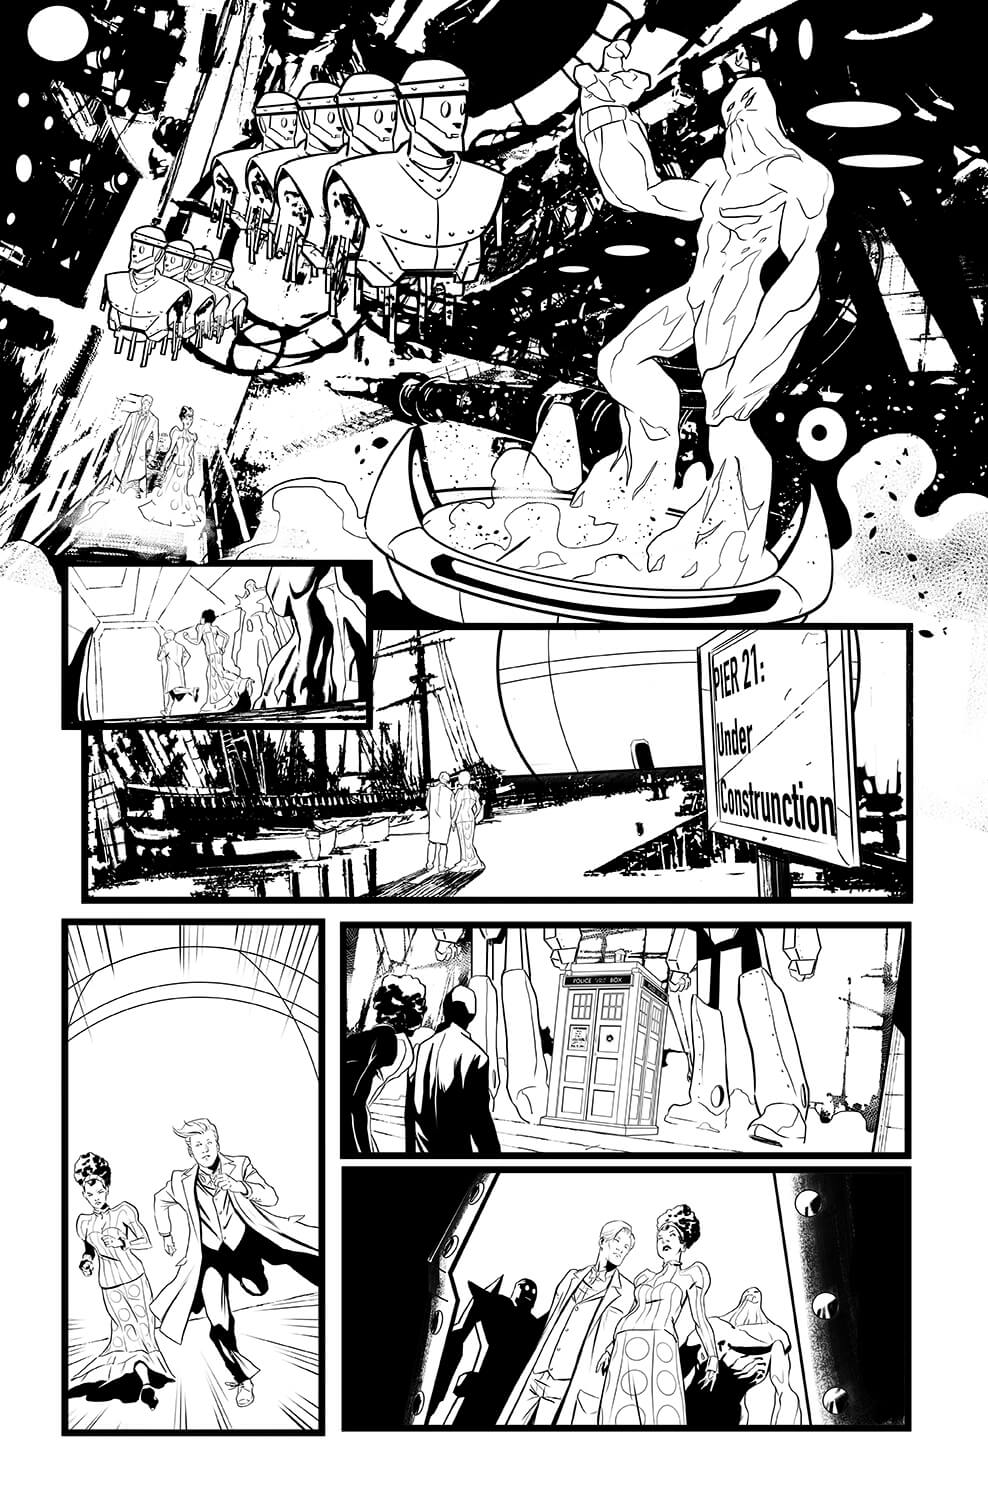 pasquale-qualano-portfolio-interiors-Doctor-Who-11th-Doctor-The-Steampunk-Conundrum-Page-18---